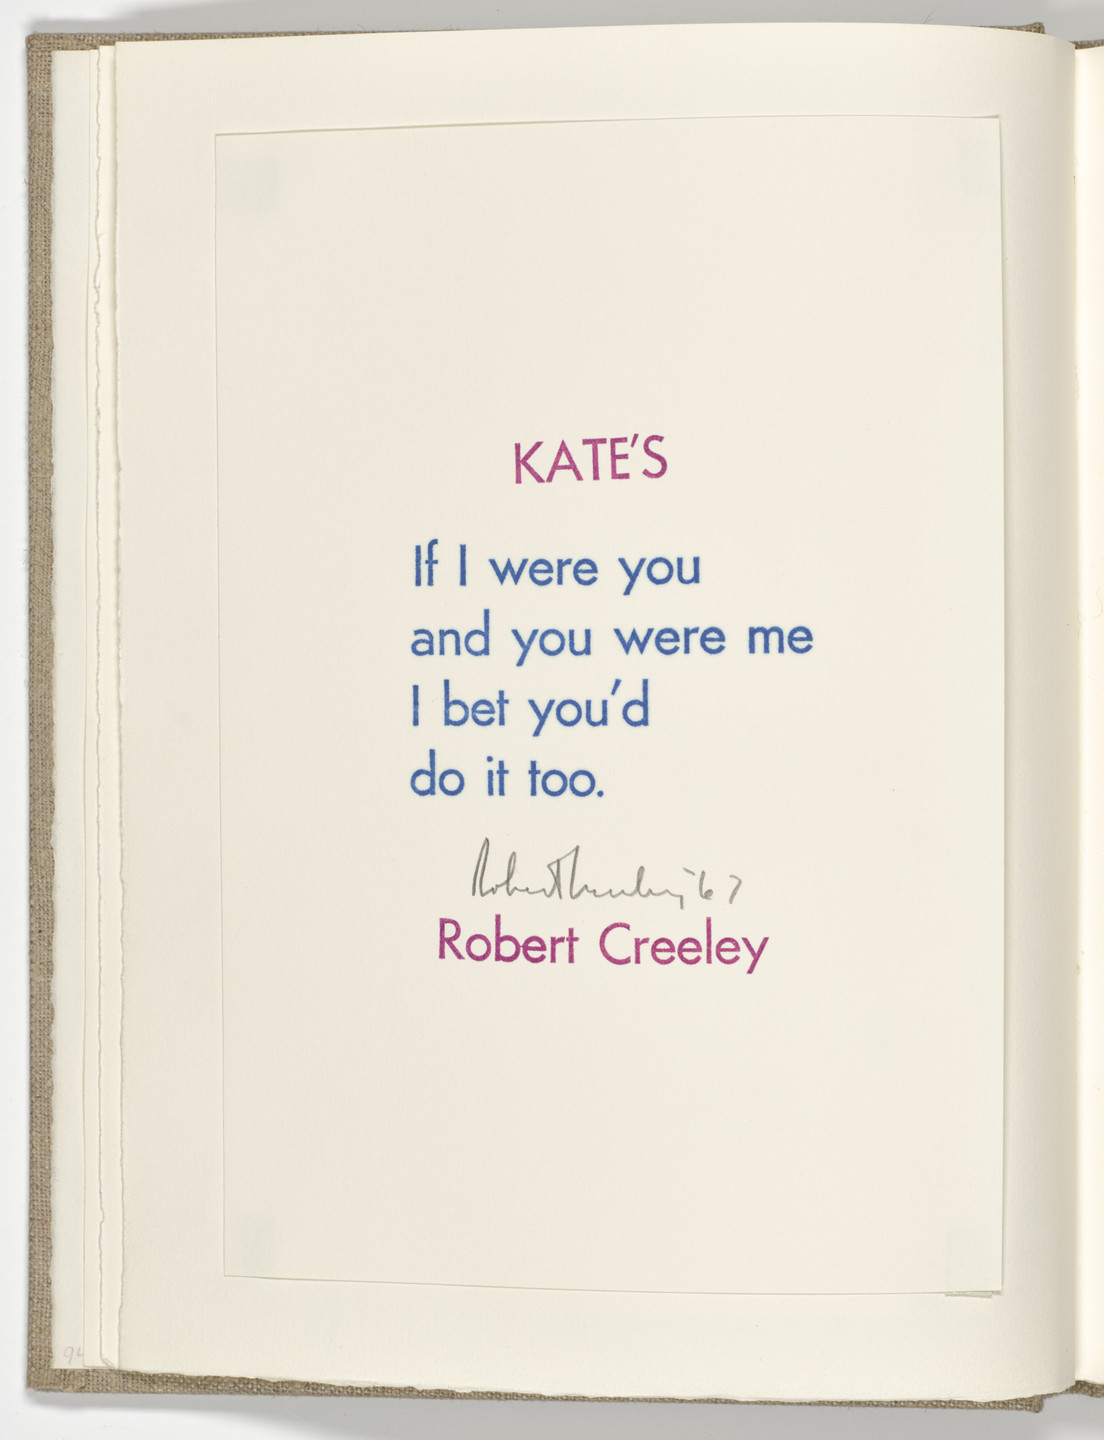 Robert Creeley. Kate's (folio 2 verso) from Stamped Indelibly. 1967